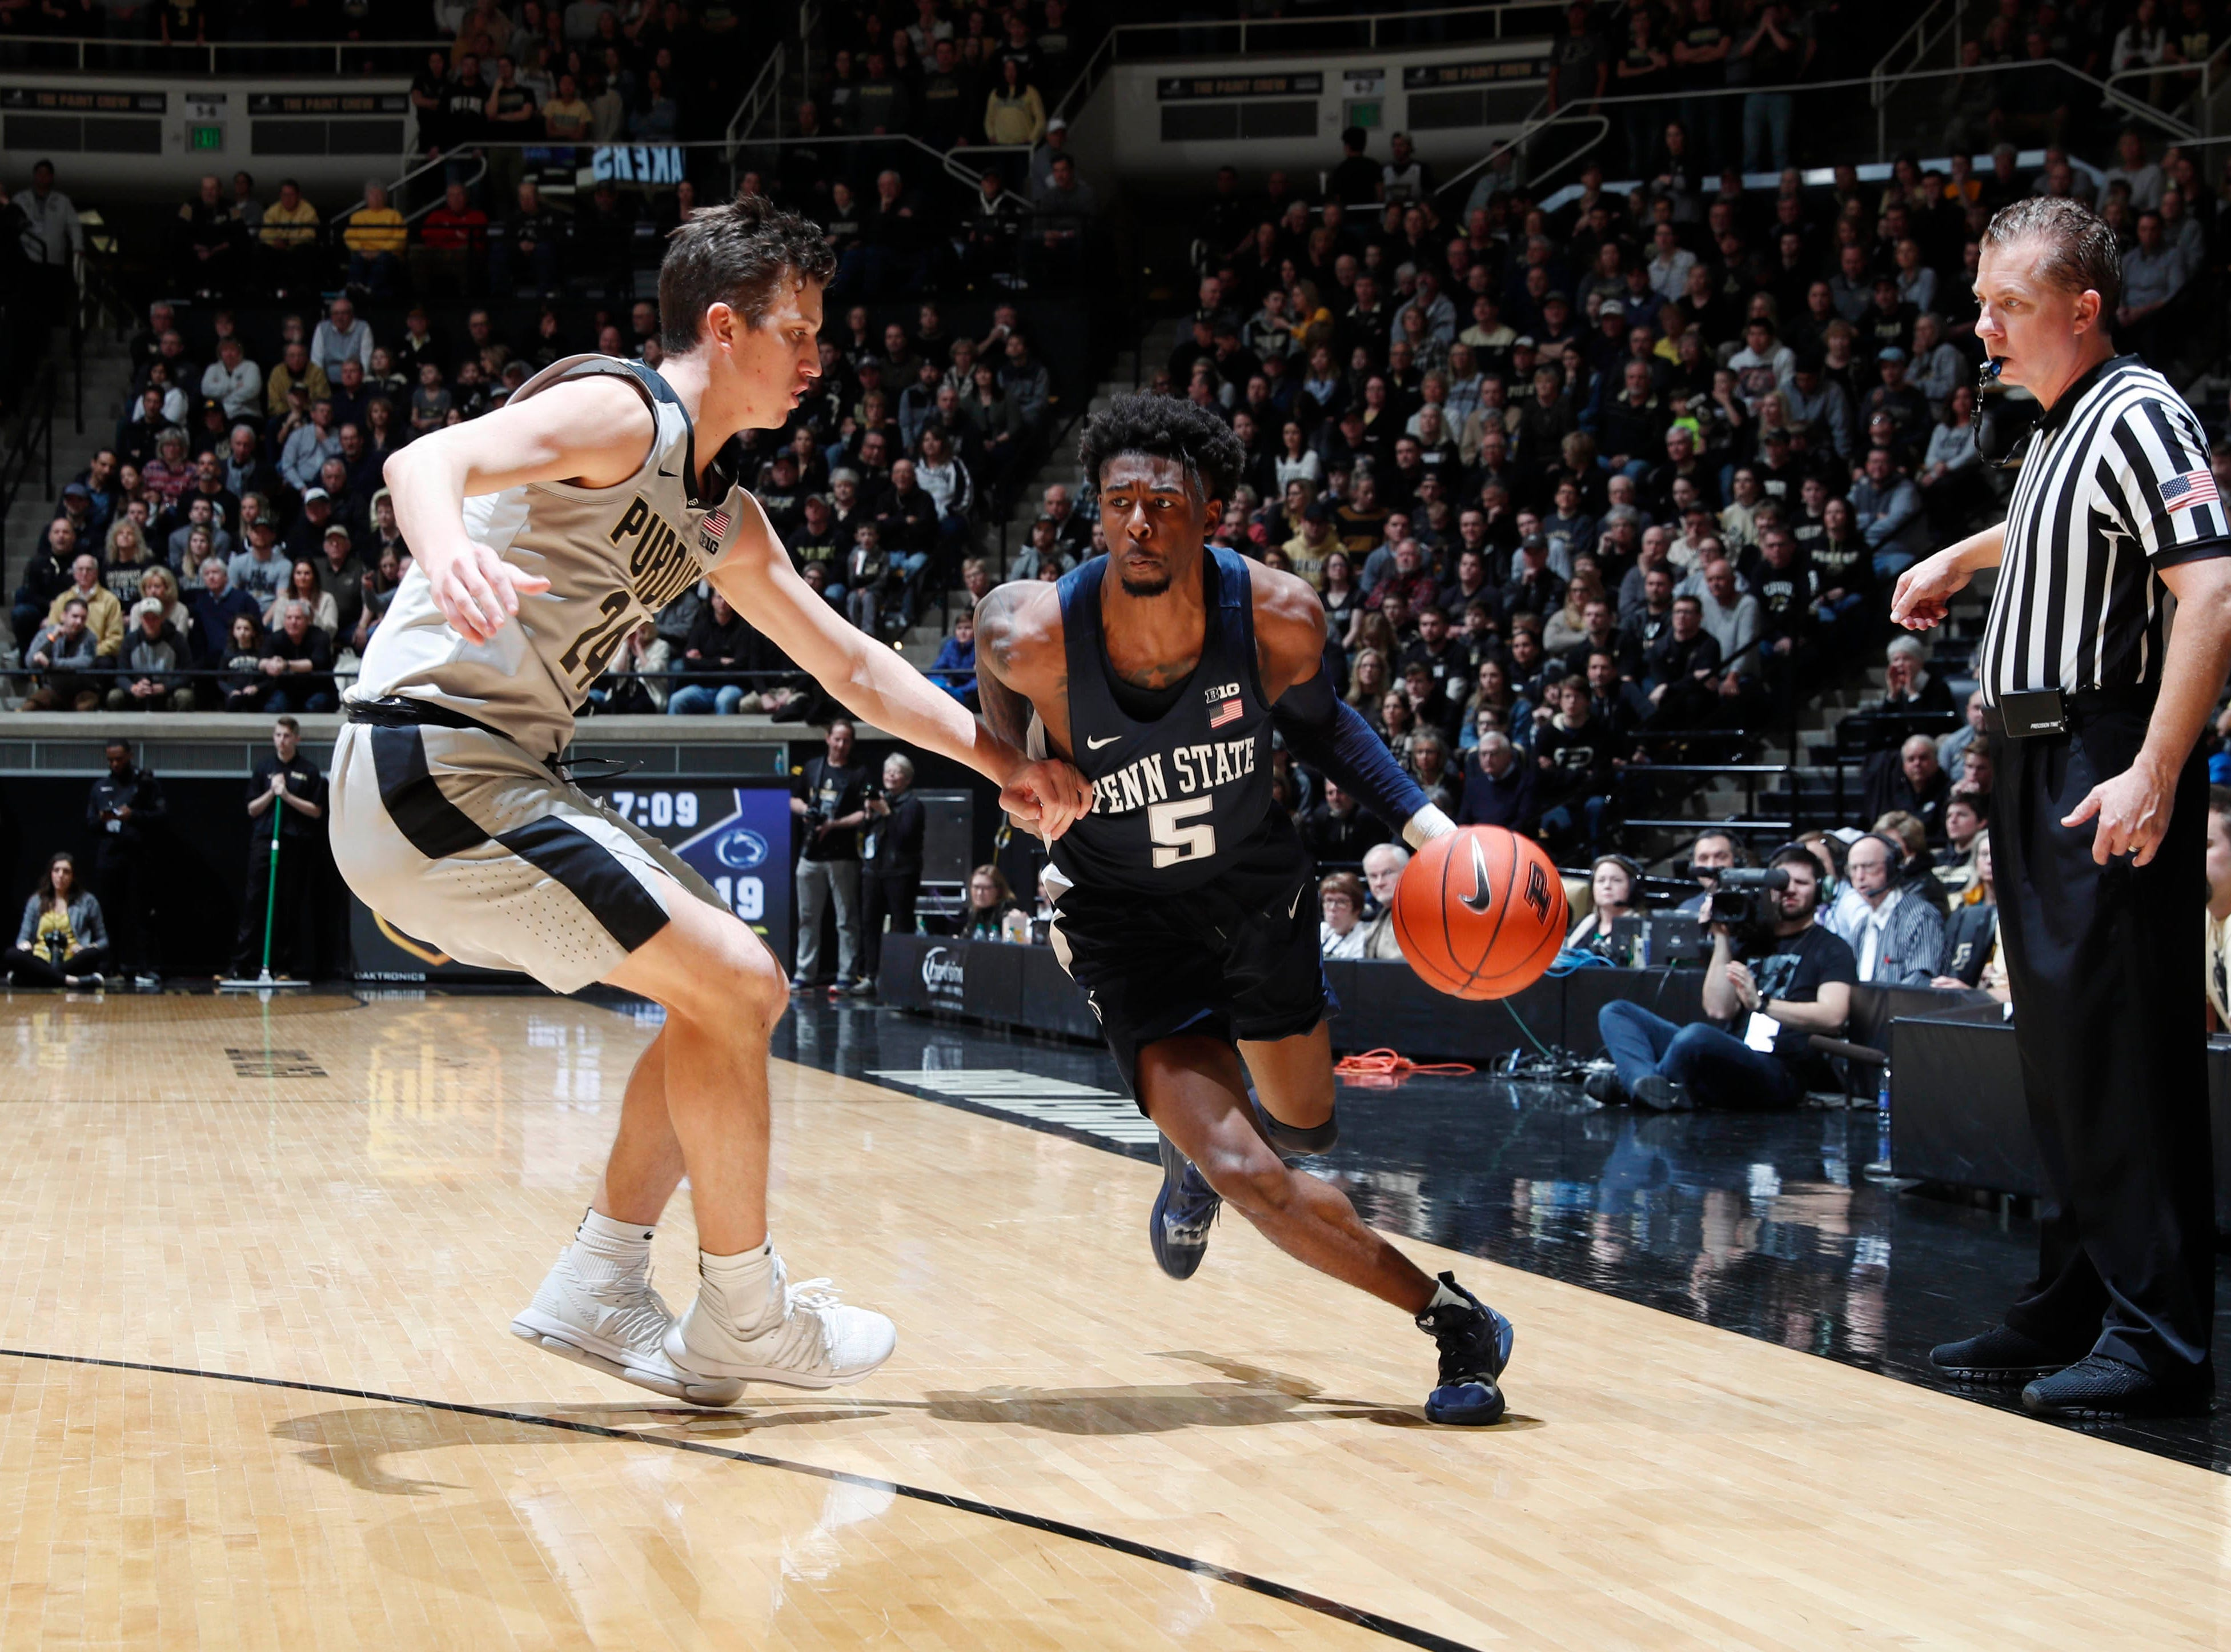 Penn State Nittany Lions guard Jamari Wheeler (5) drives to the basket against Purdue Boilermakers forward Grady Eifert (24) during the first half at Mackey Arena.